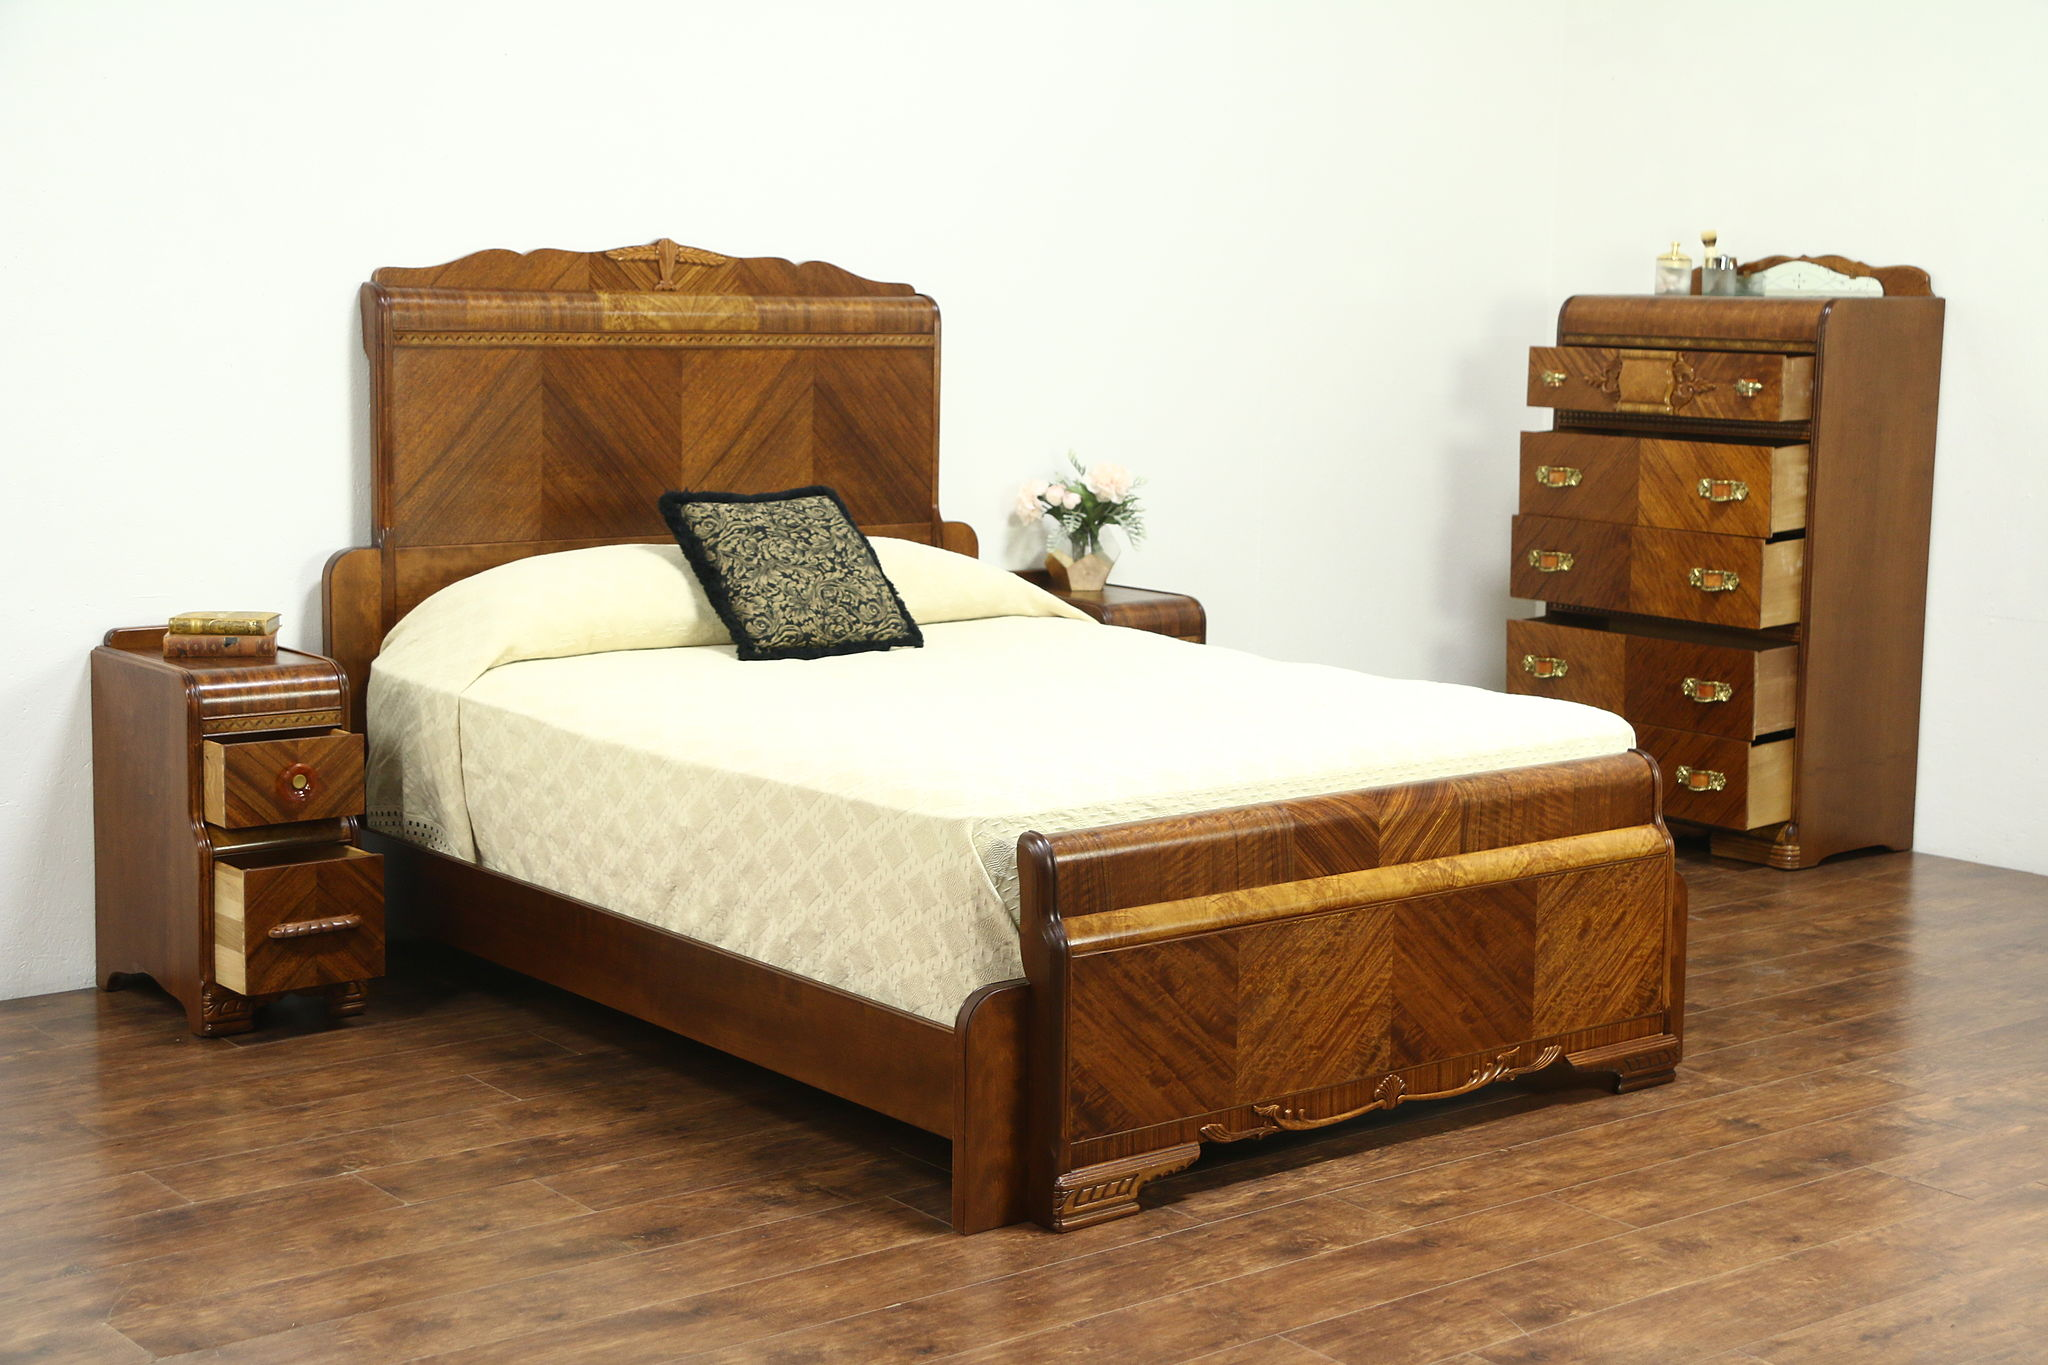 Sold Waterfall Art Deco Vintage Bedroom Set Queen Size